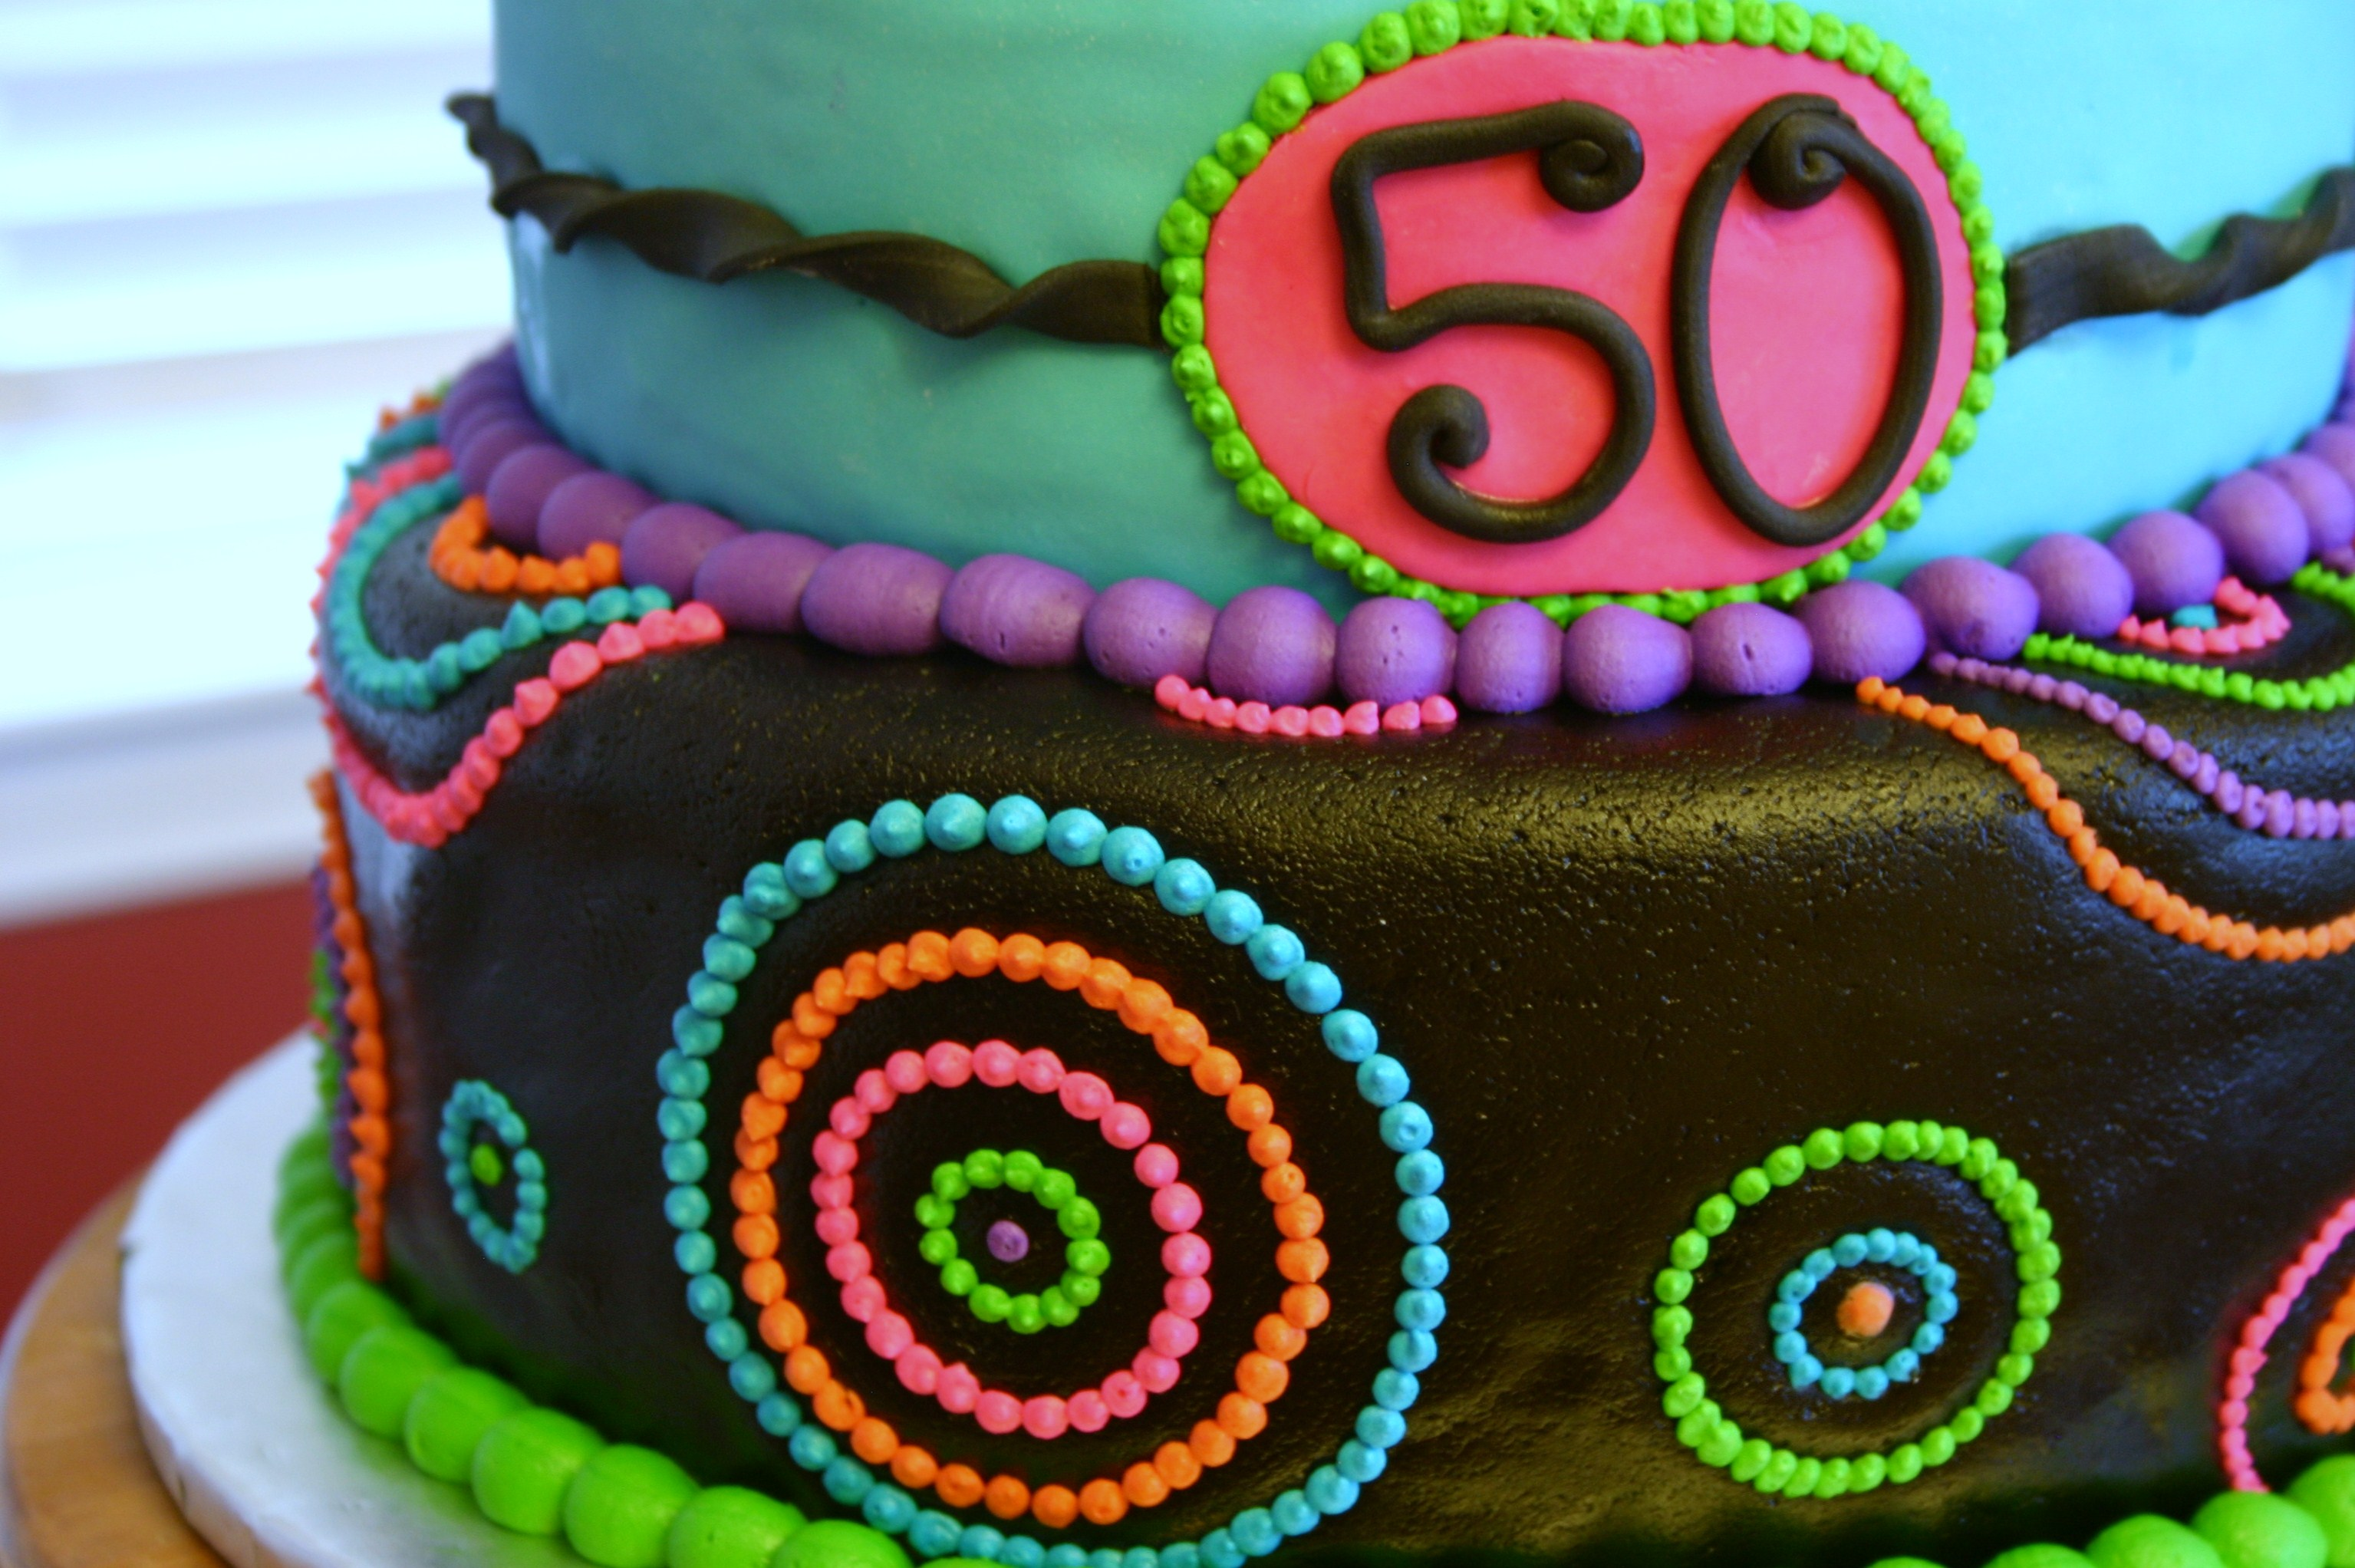 50th Birthday Cake Lolos Cakes Sweets